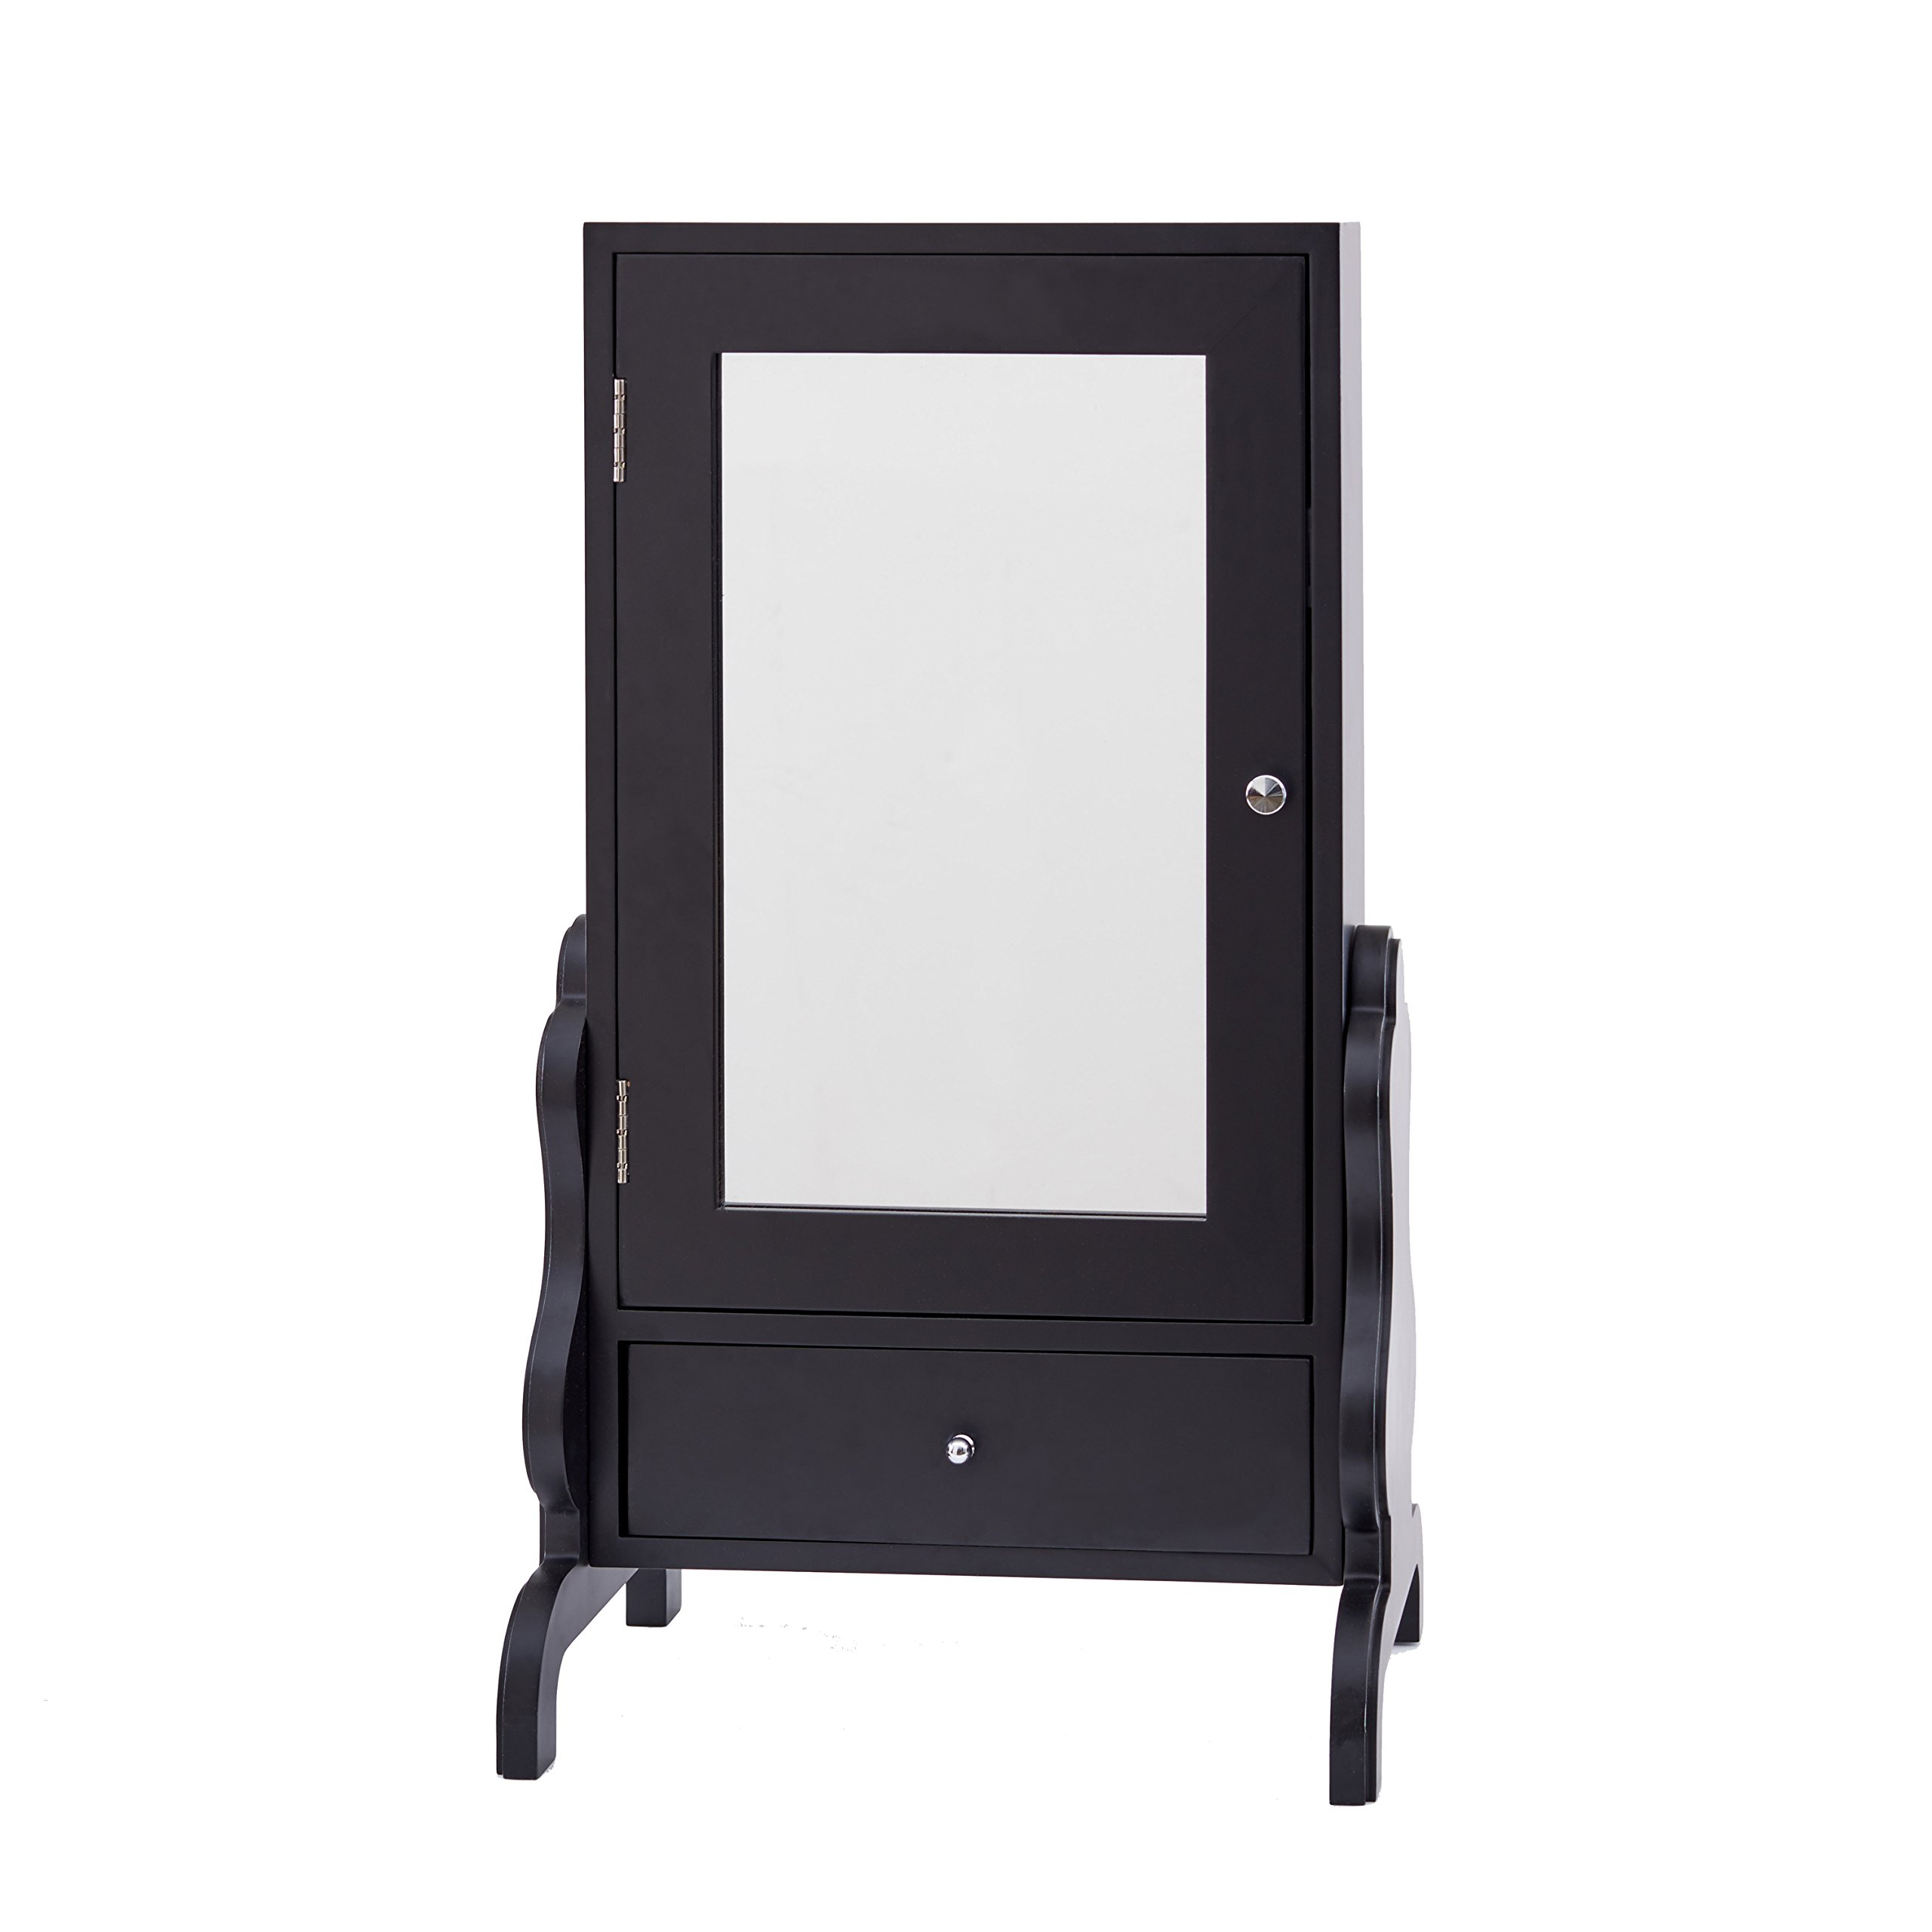 FirsTime & Co. InnerSpace Luxury Products Tabletop Mirror with Jewelry Storage - Black